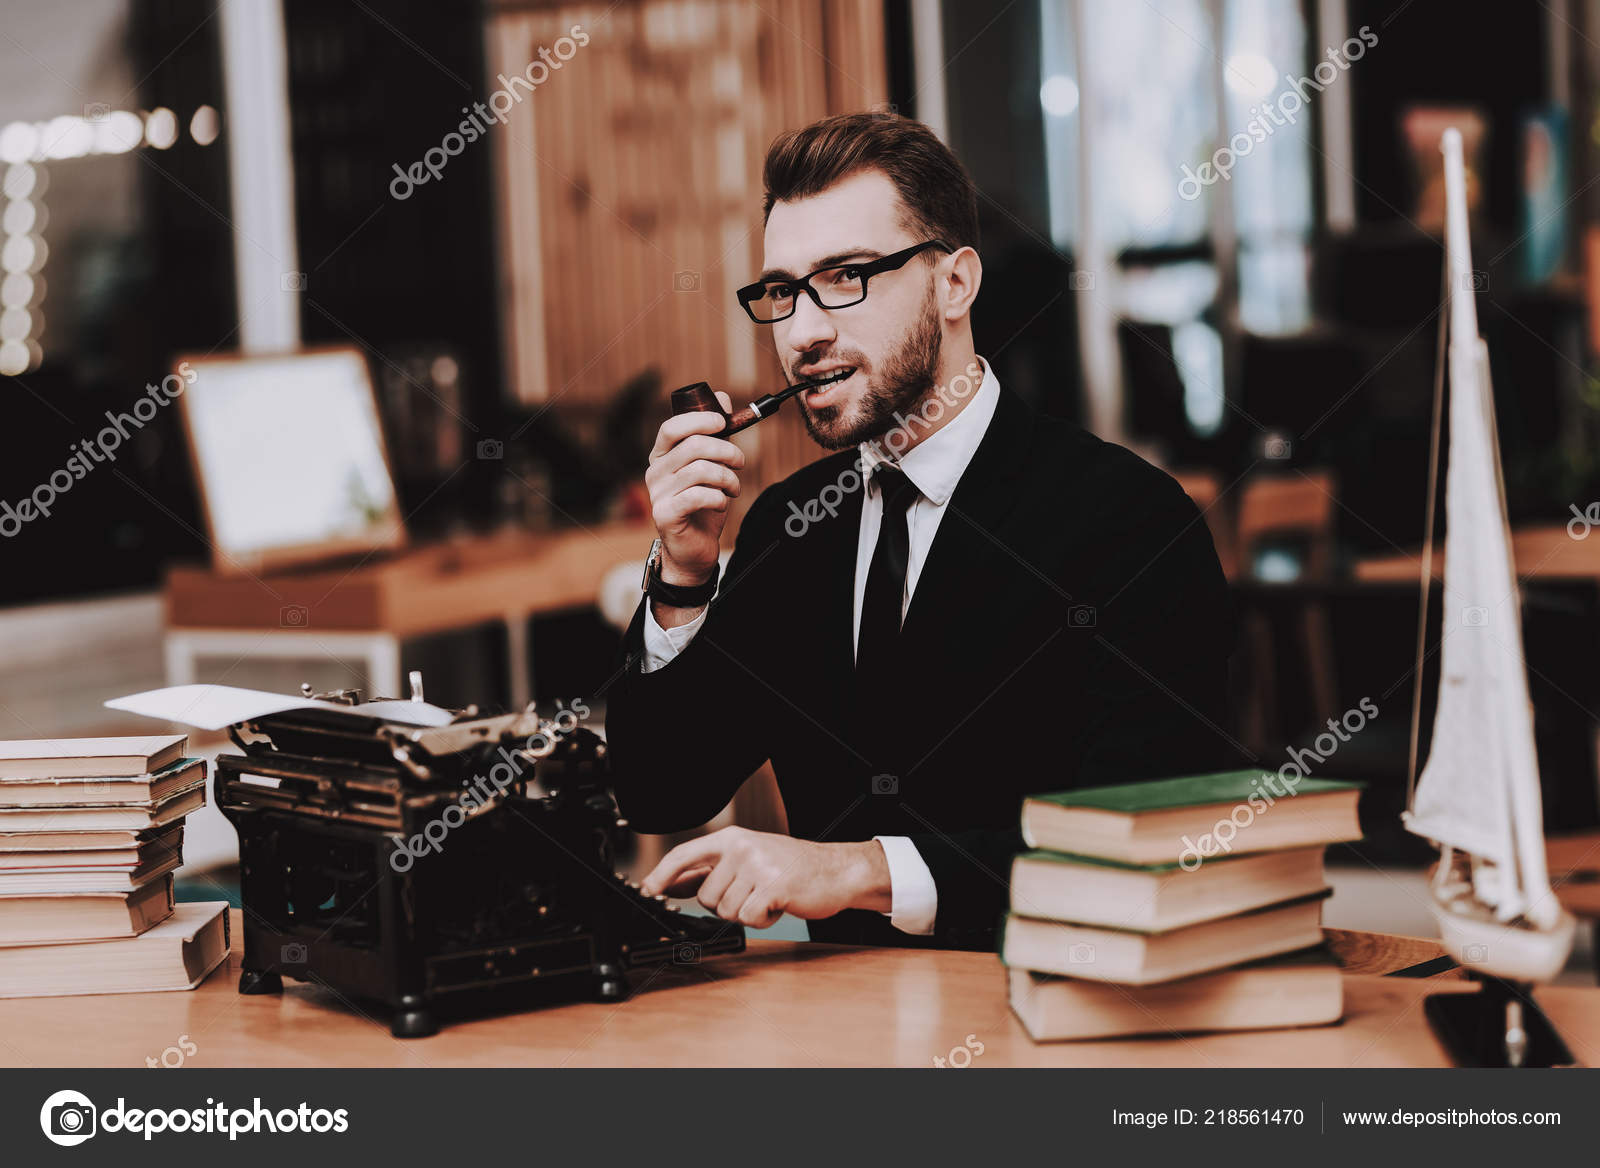 Eyeglasses Businessman Suit Old Typewriter Hands Young Male